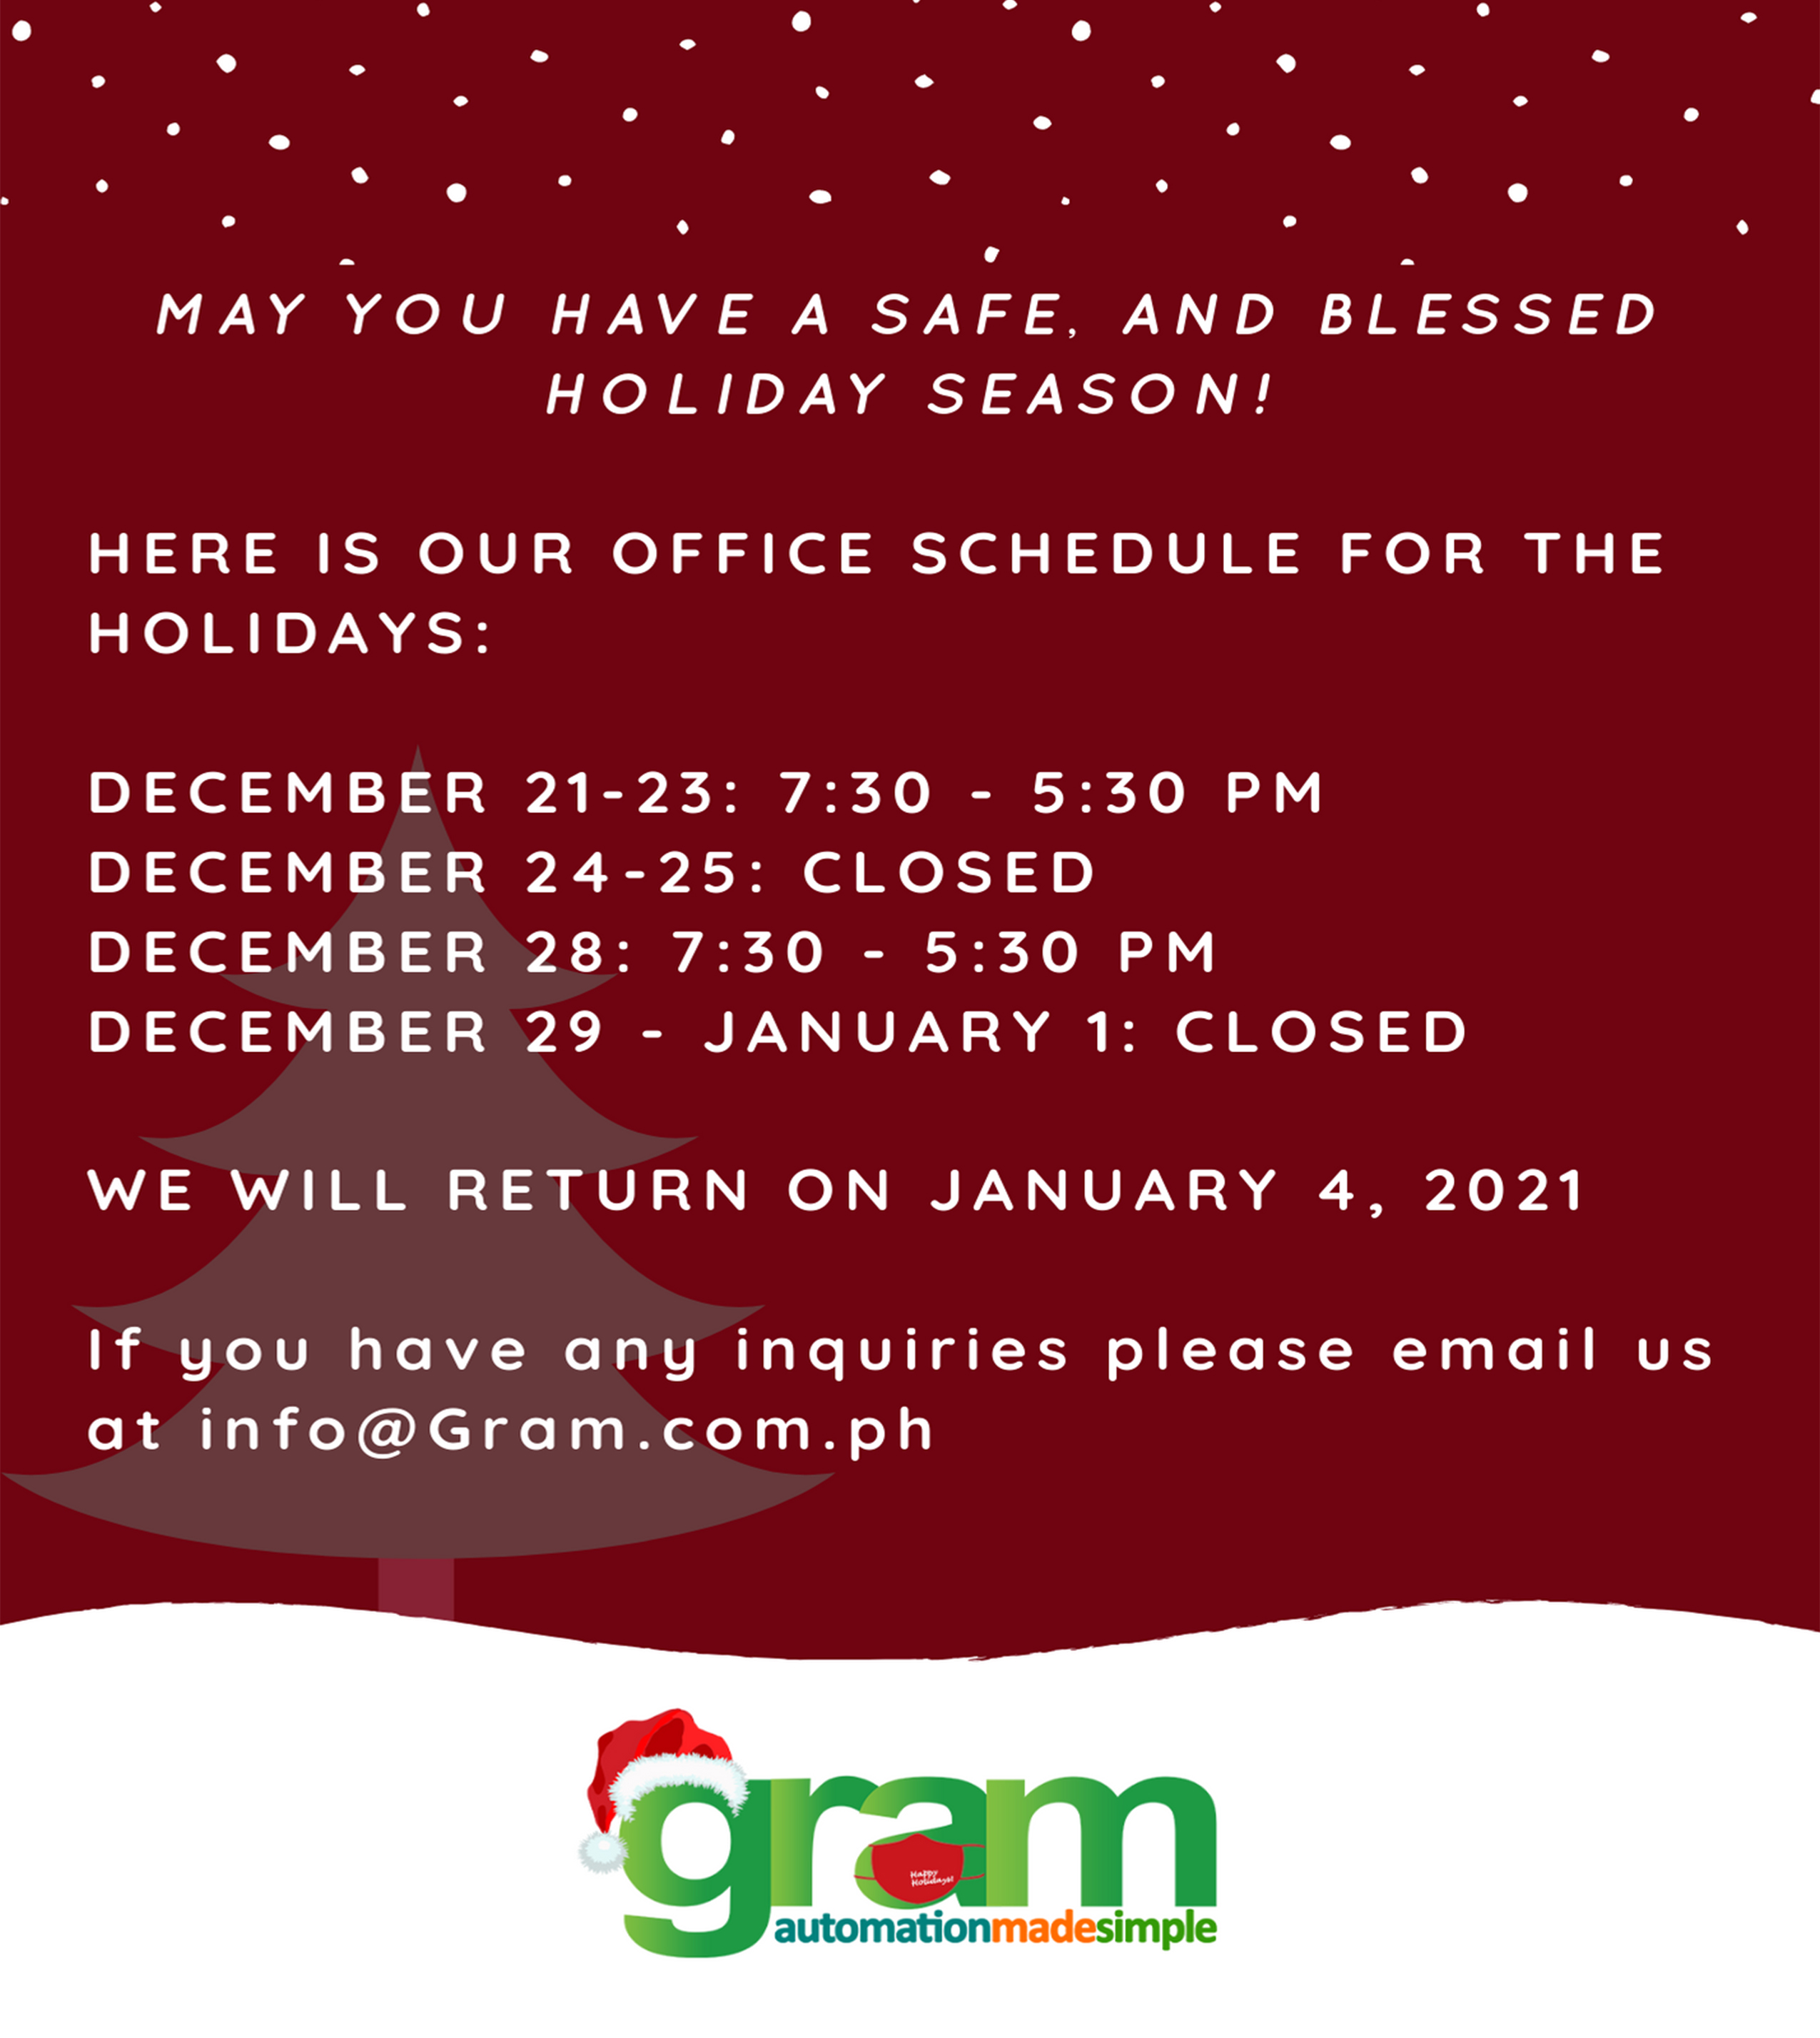 Office Schedule for the Holidays